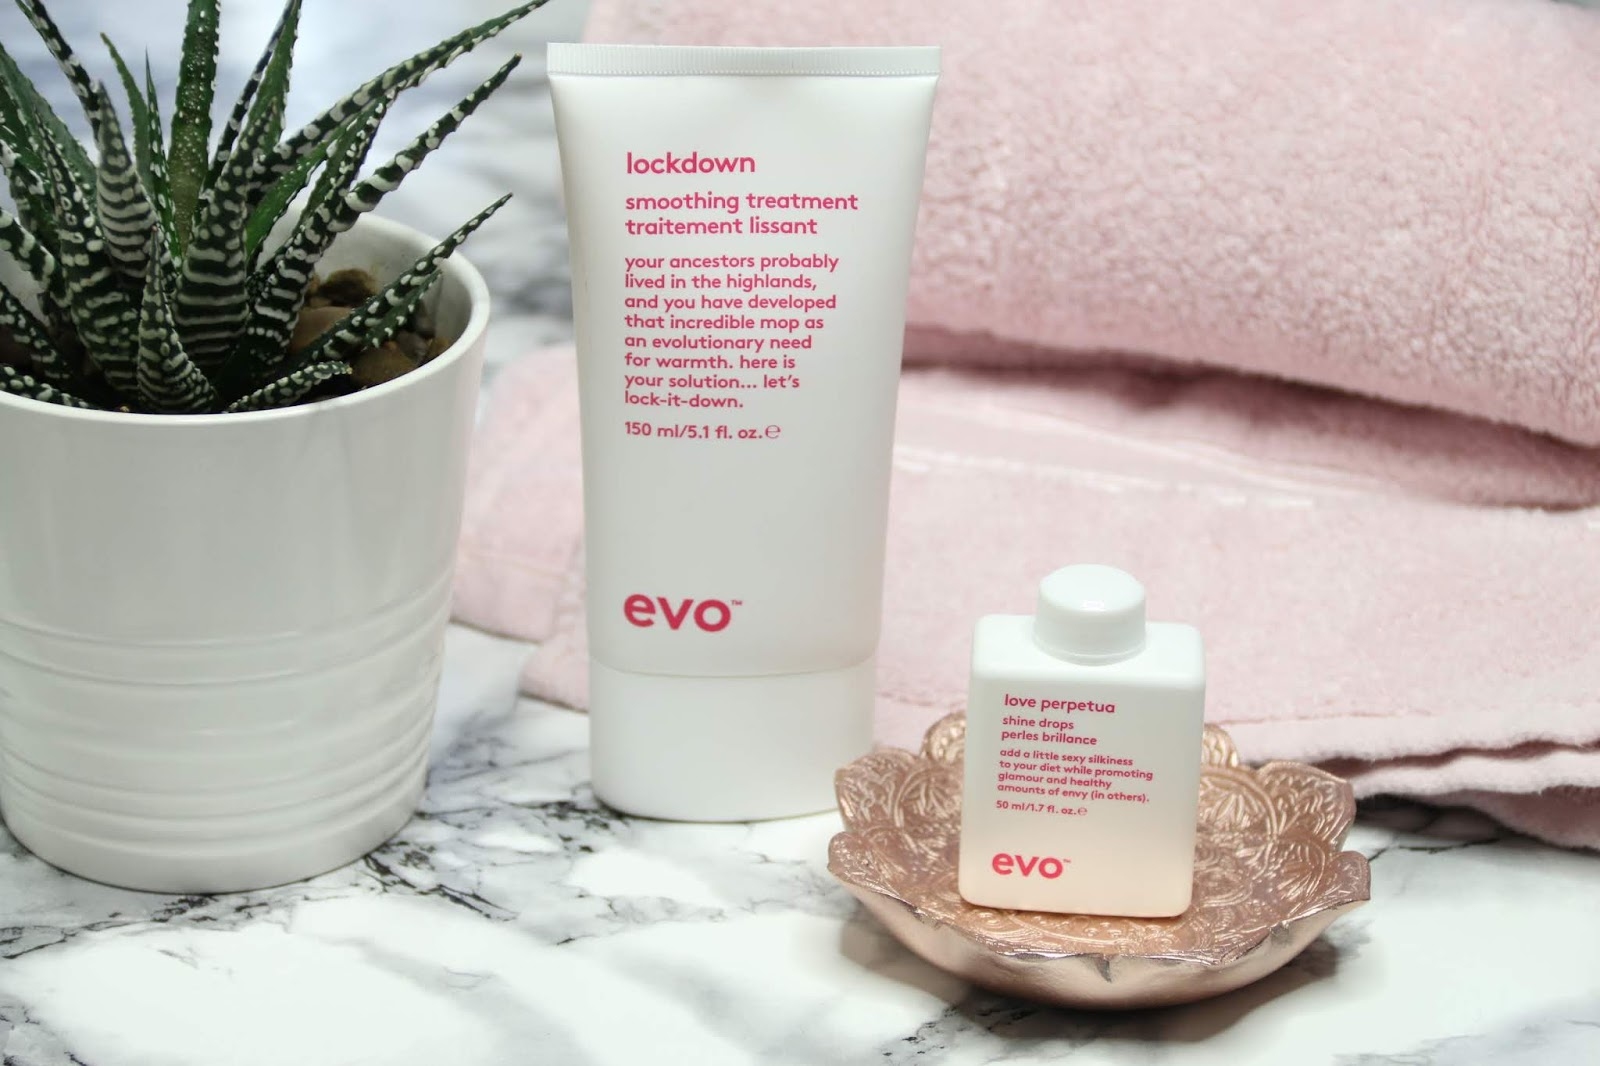 An Image of two Evo Hair haircare products Lockdown and Love Perpetua with a pink towel and succulent on marble